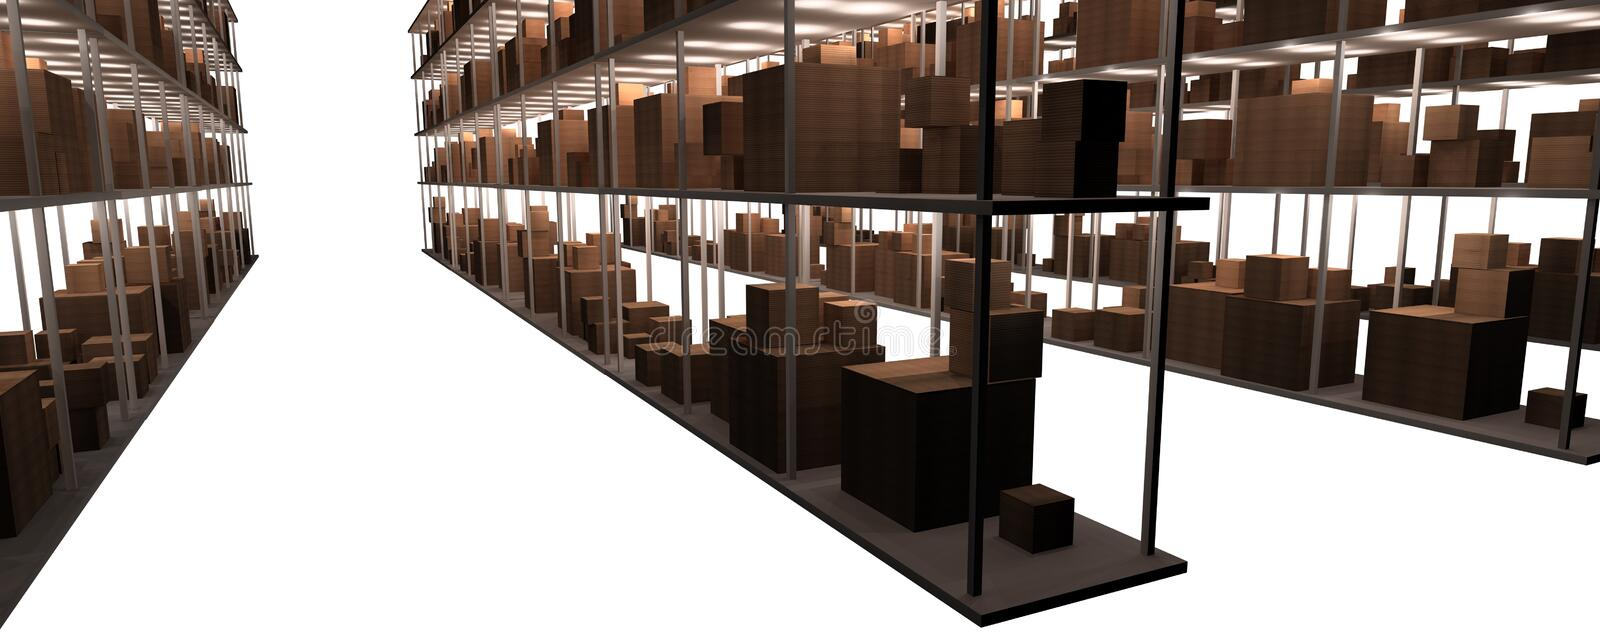 Stock and warehouse shelves. An isolated computer generation of several stock / warehouse shelves ready for distribution royalty free illustration